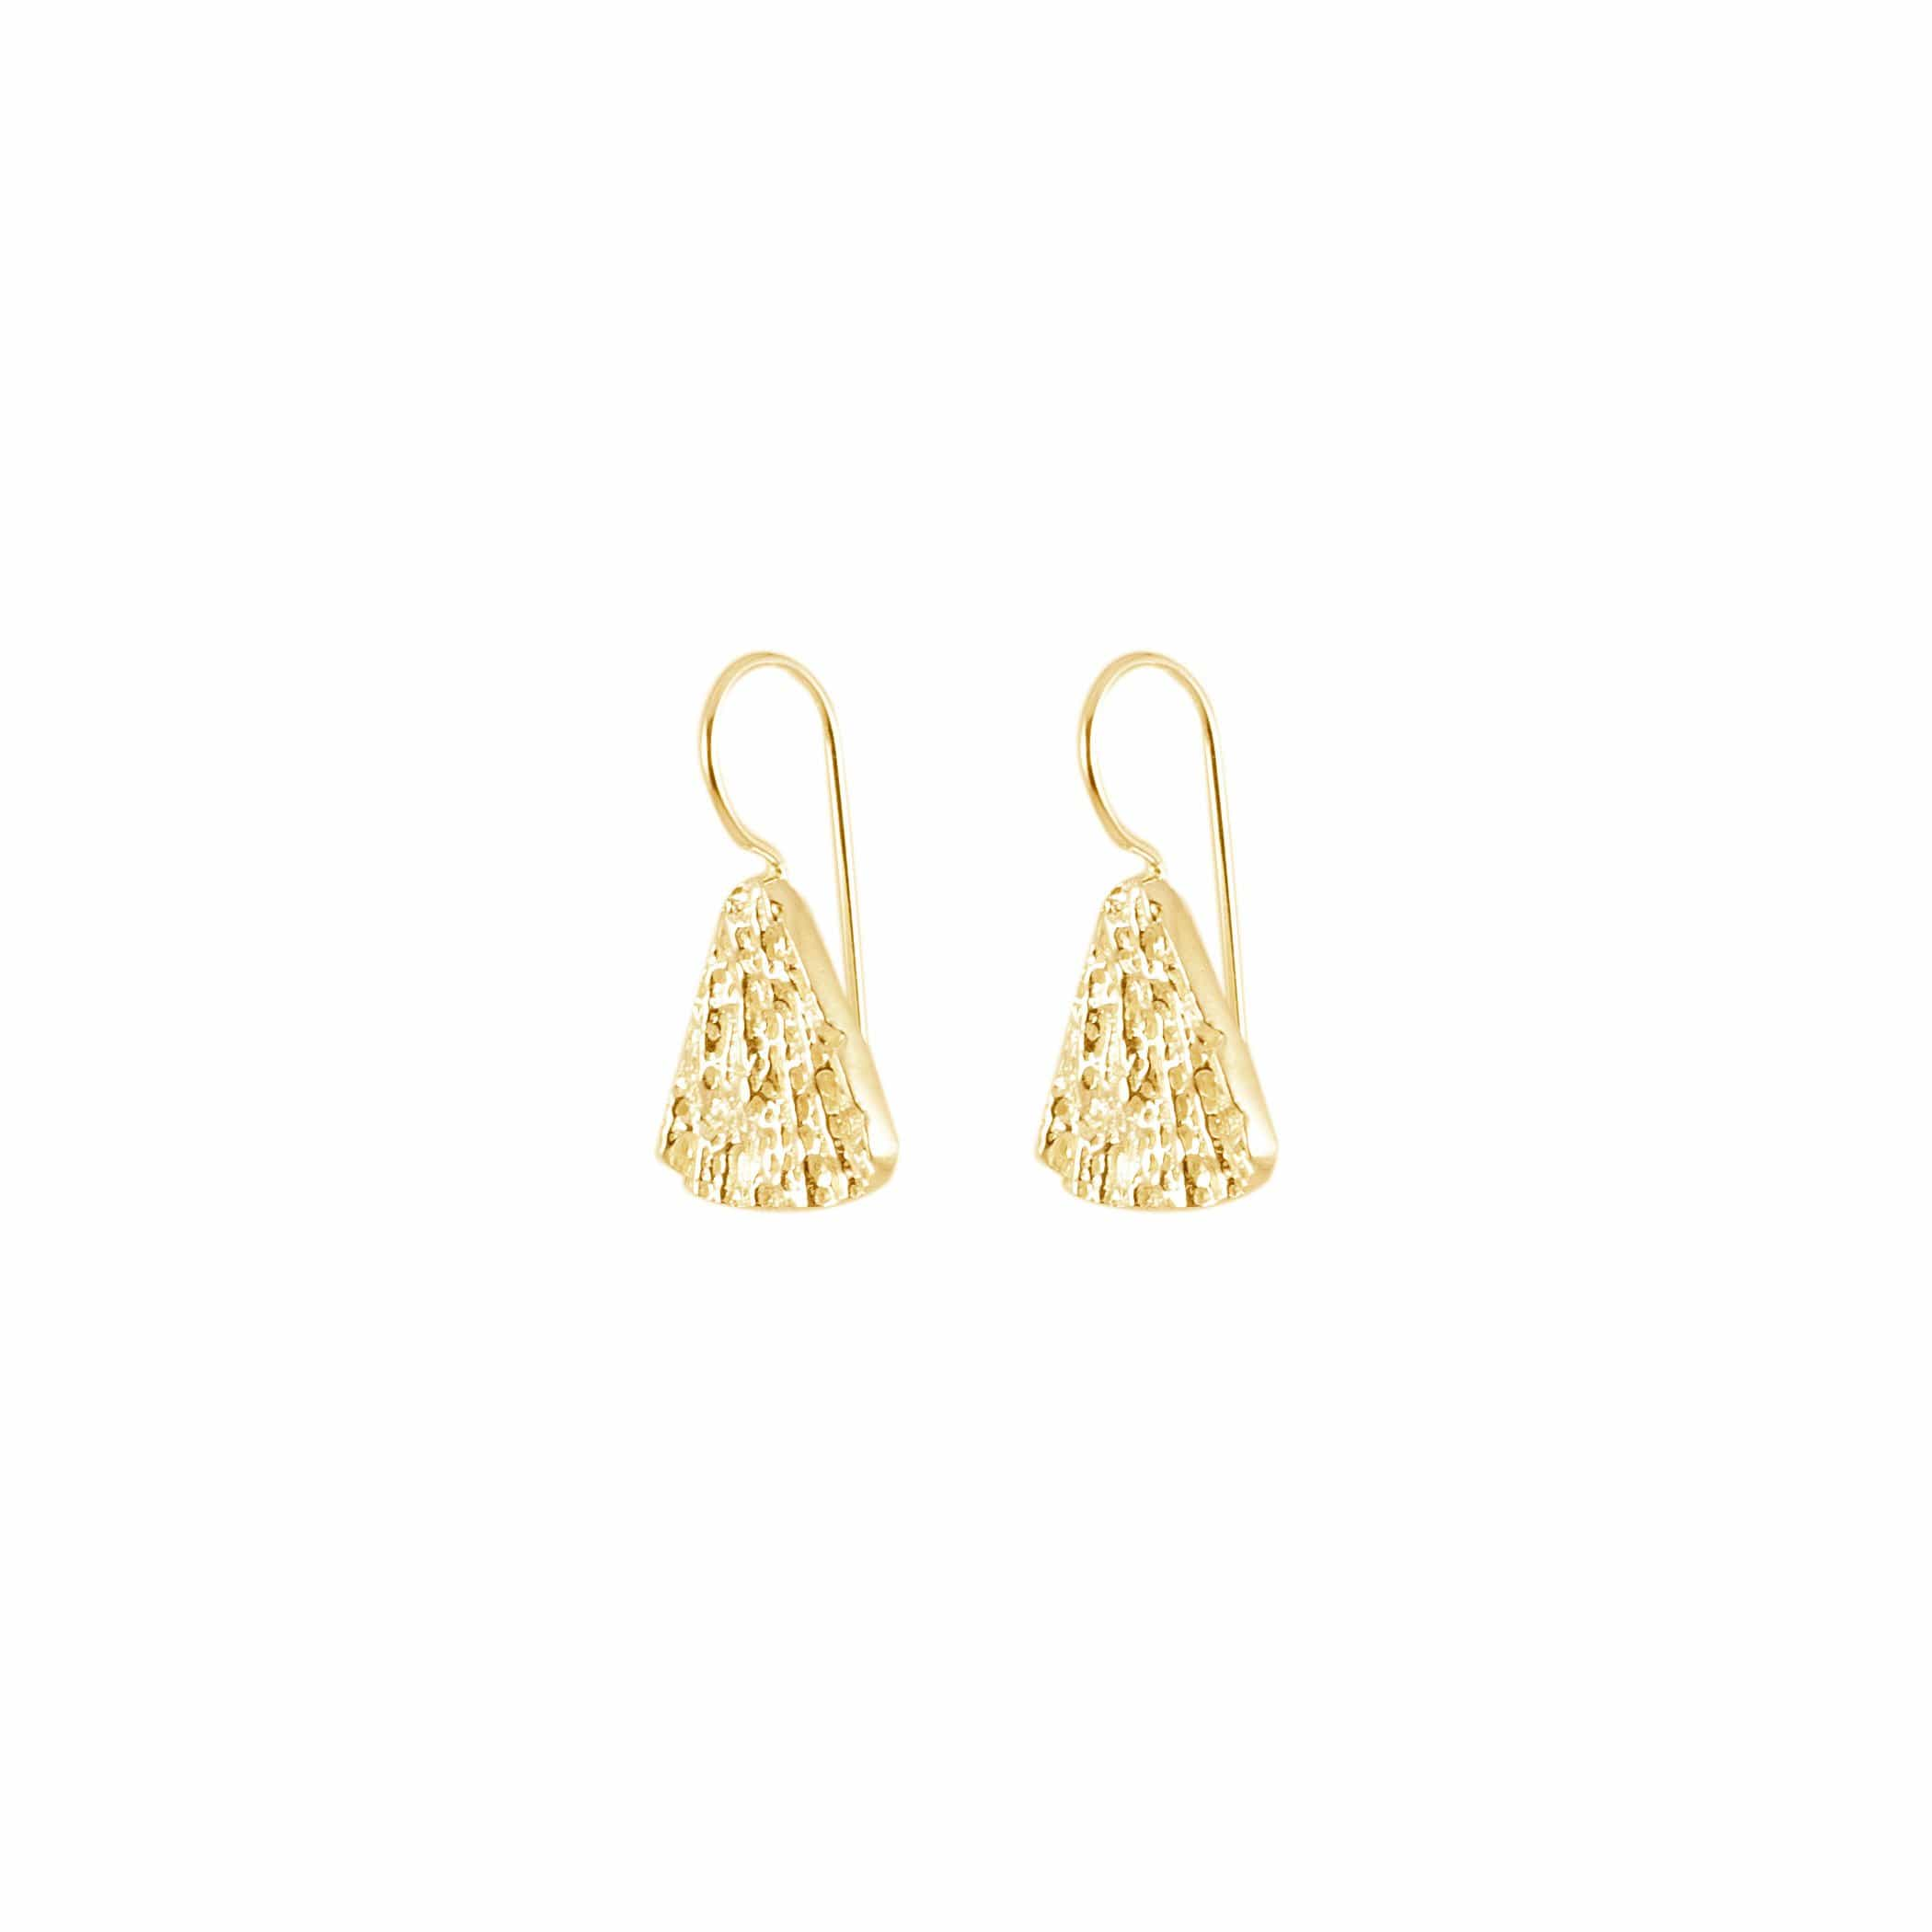 Small Triangle Earrings, Yellow Gold